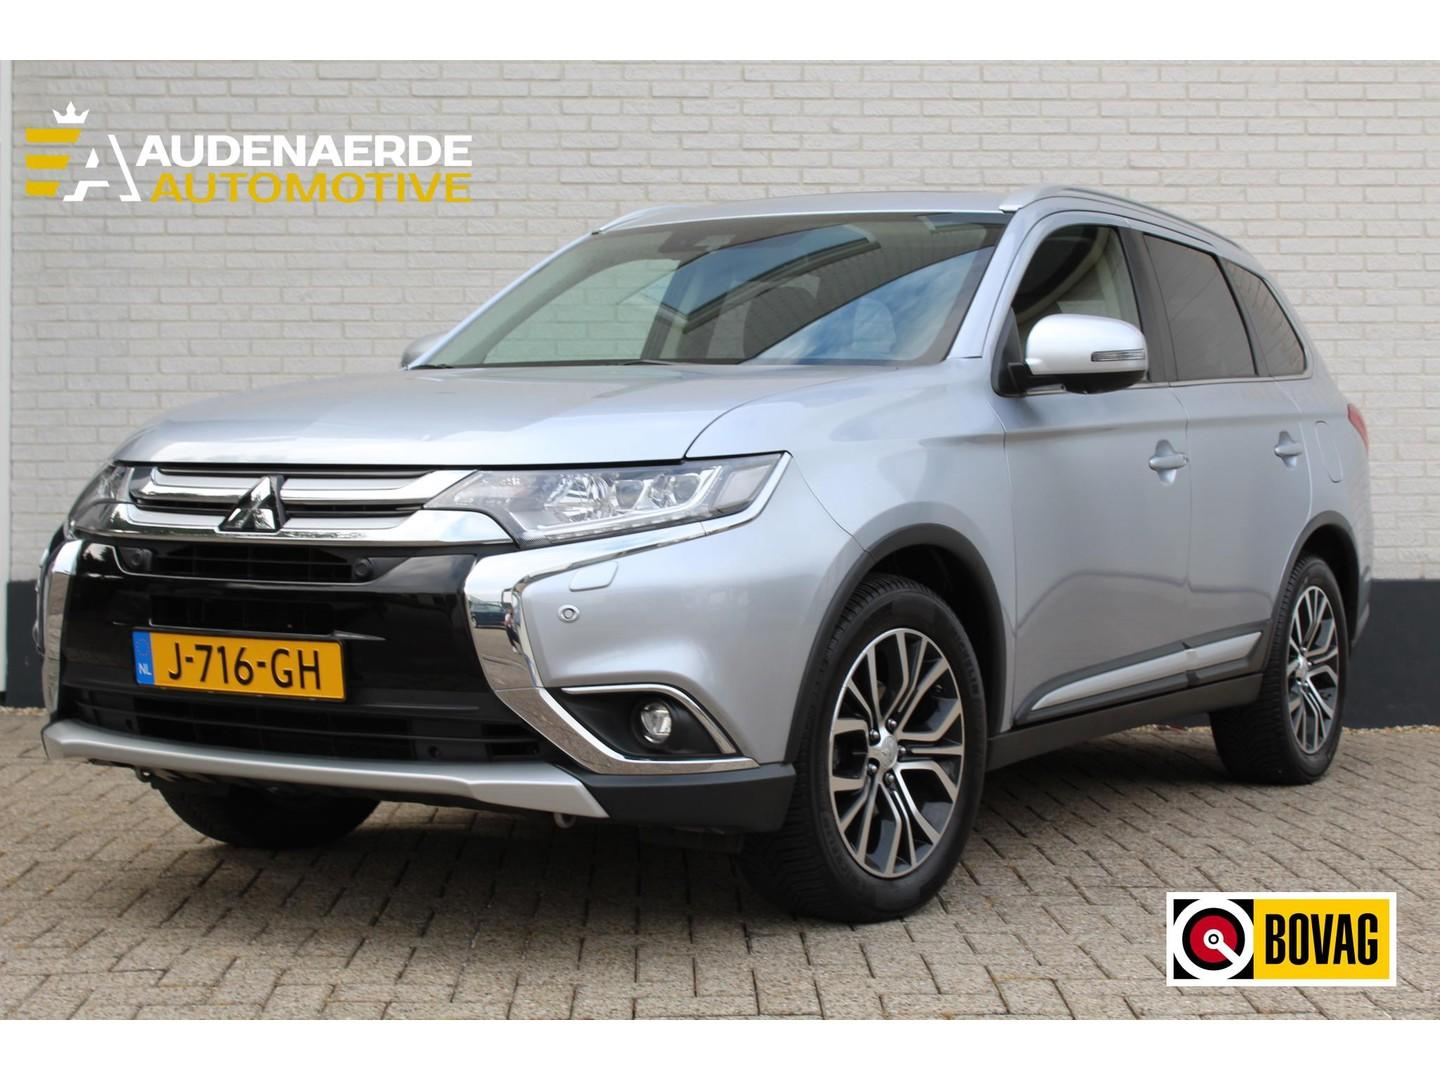 Mitsubishi Outlander 2.0 instyle+ 4wd